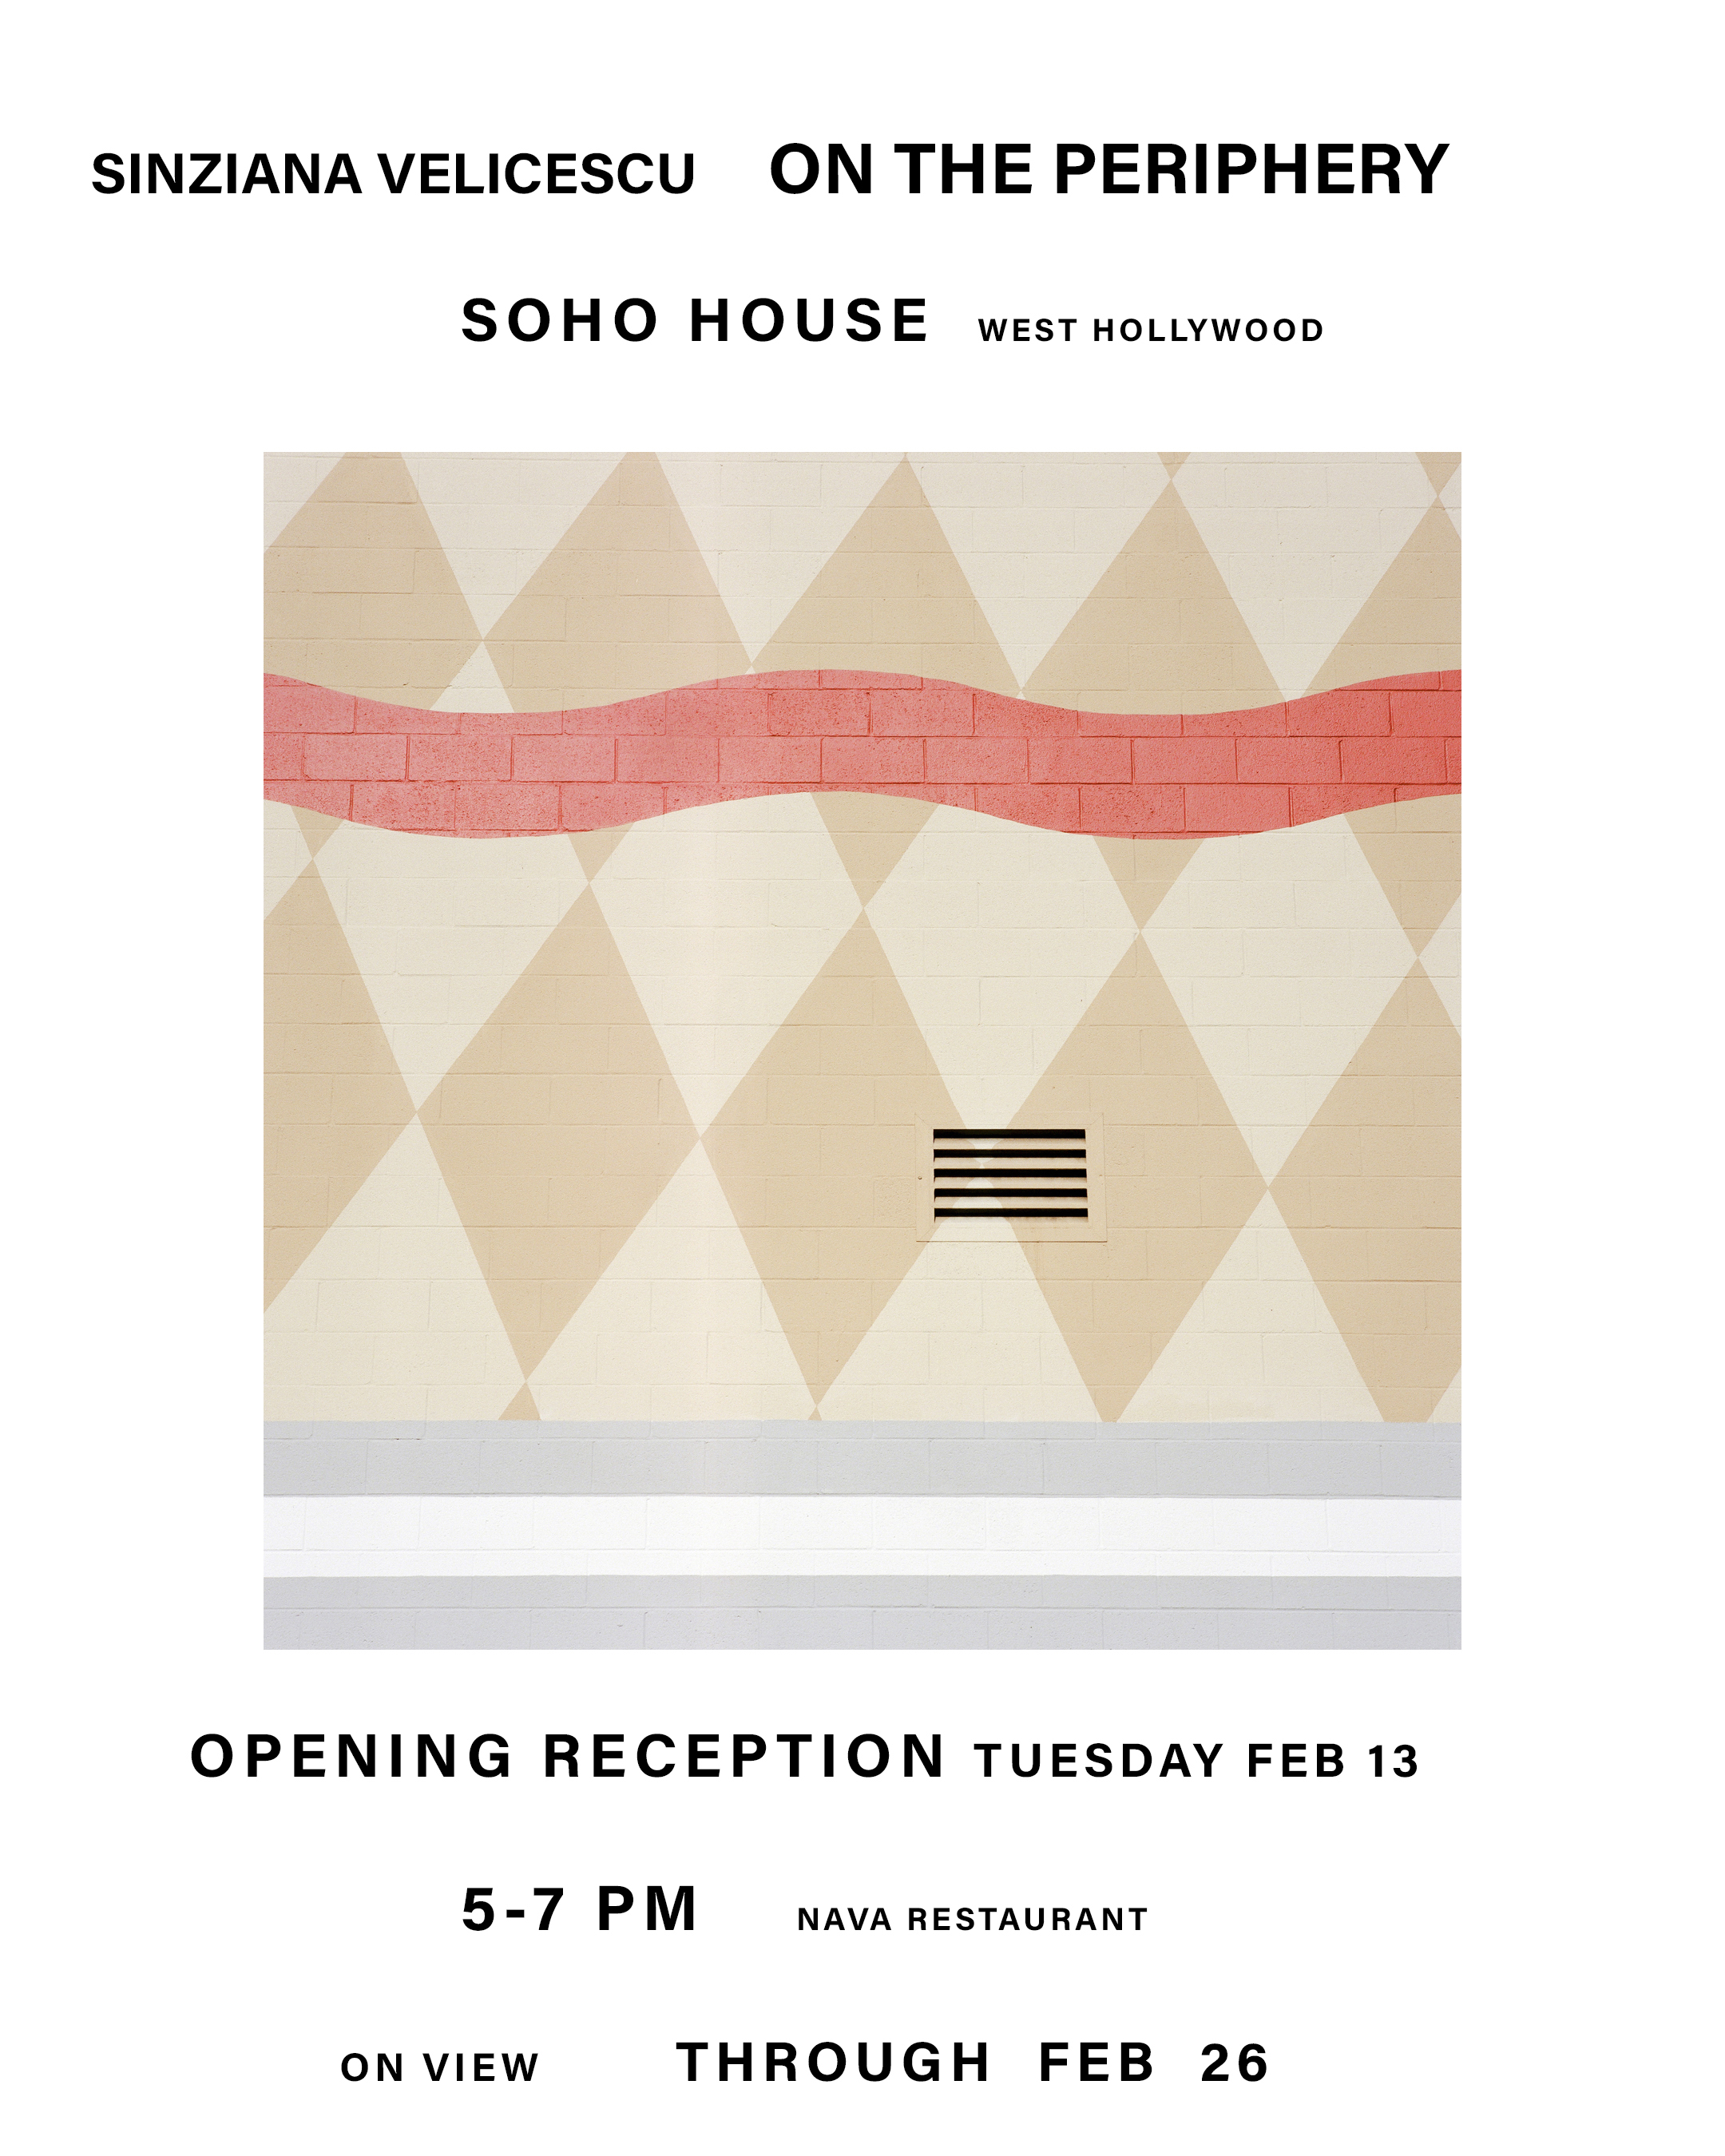 - SPECIAL EVENTTURNING IN PLACE: ARTIST PANELUprise Art + Soho House present an intimate event with LA-based photographers as they discuss their relationships with Los Angeles as a subject of, and background to their work. Curator Liz Lapp will lead a panel including photographers Sinziana Velicescu, Jessia Haye, Clark Hsiao, and Jordan Sullivan.February 23 - 8-10pmSoho House - Luckman Space9200 Sunset Blvd - West HollywoodOpen to Soho House members only